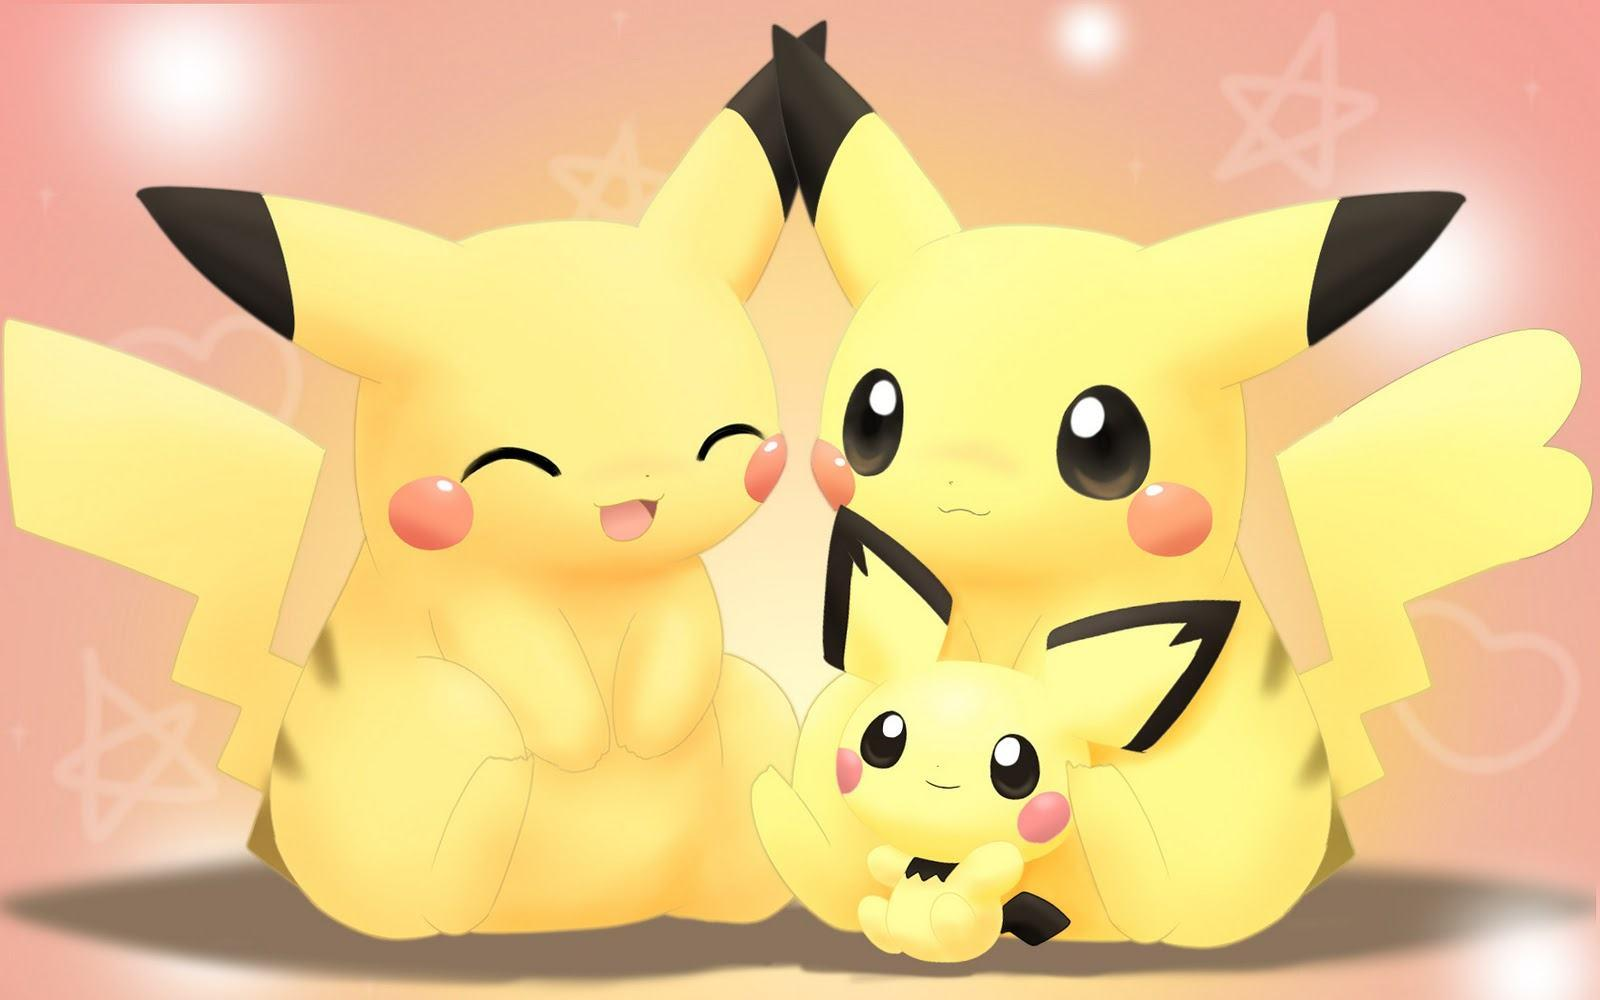 Pikachu PNG Images Transparent Free Download | PNGMart.com